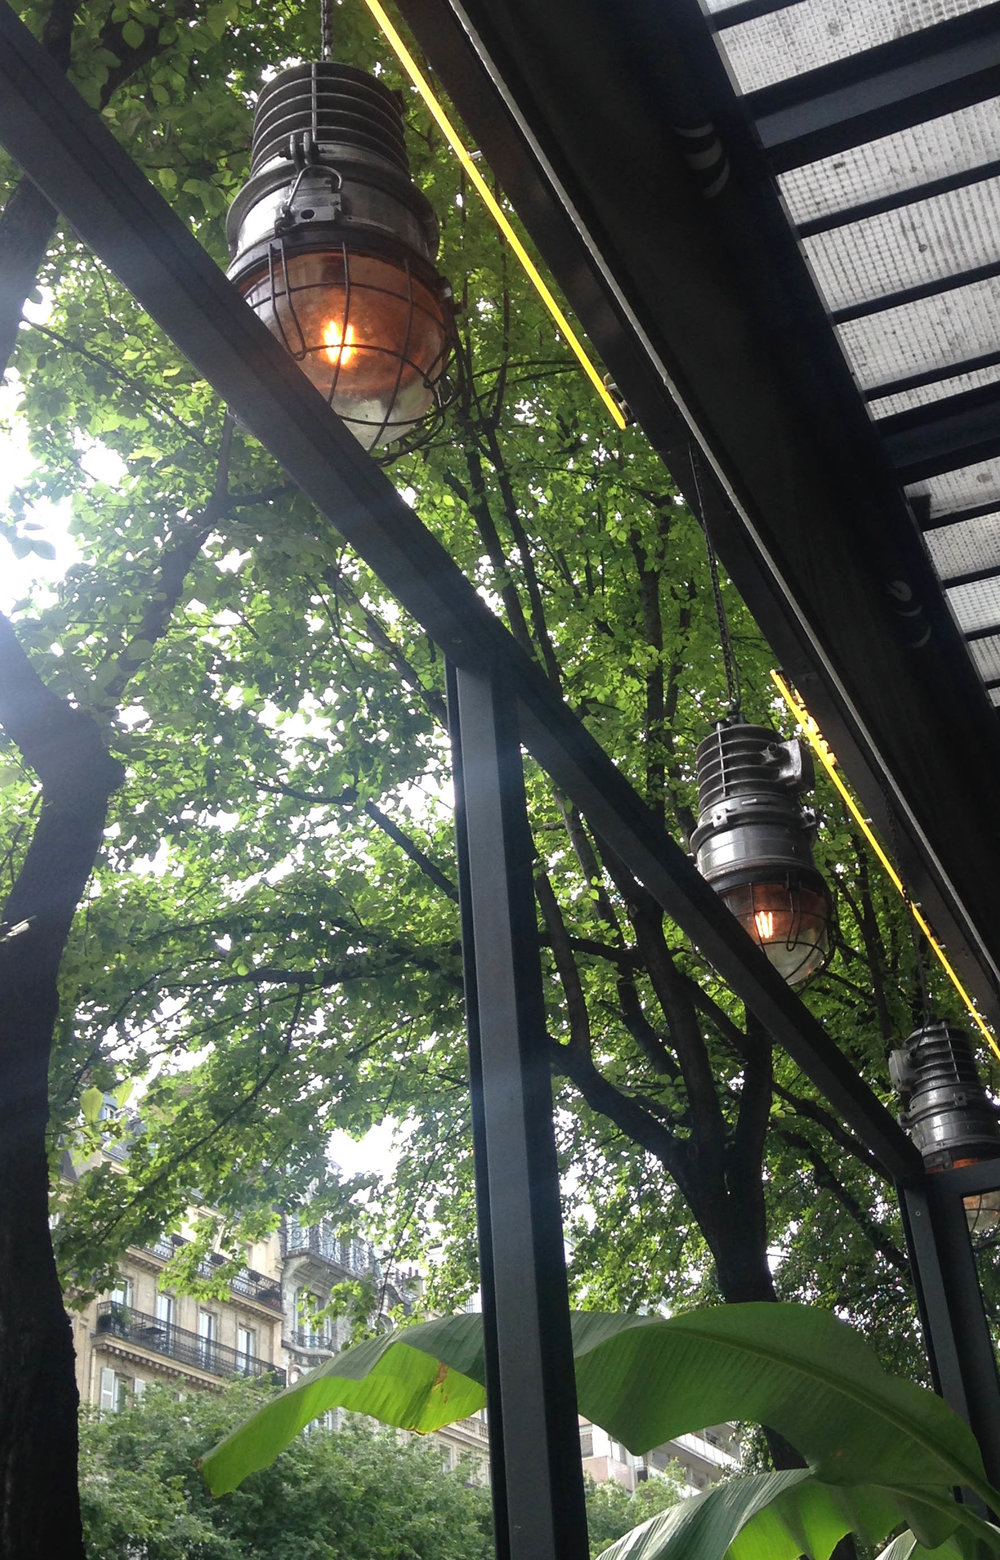 Factory-style pendants provide lighting on the terrace.